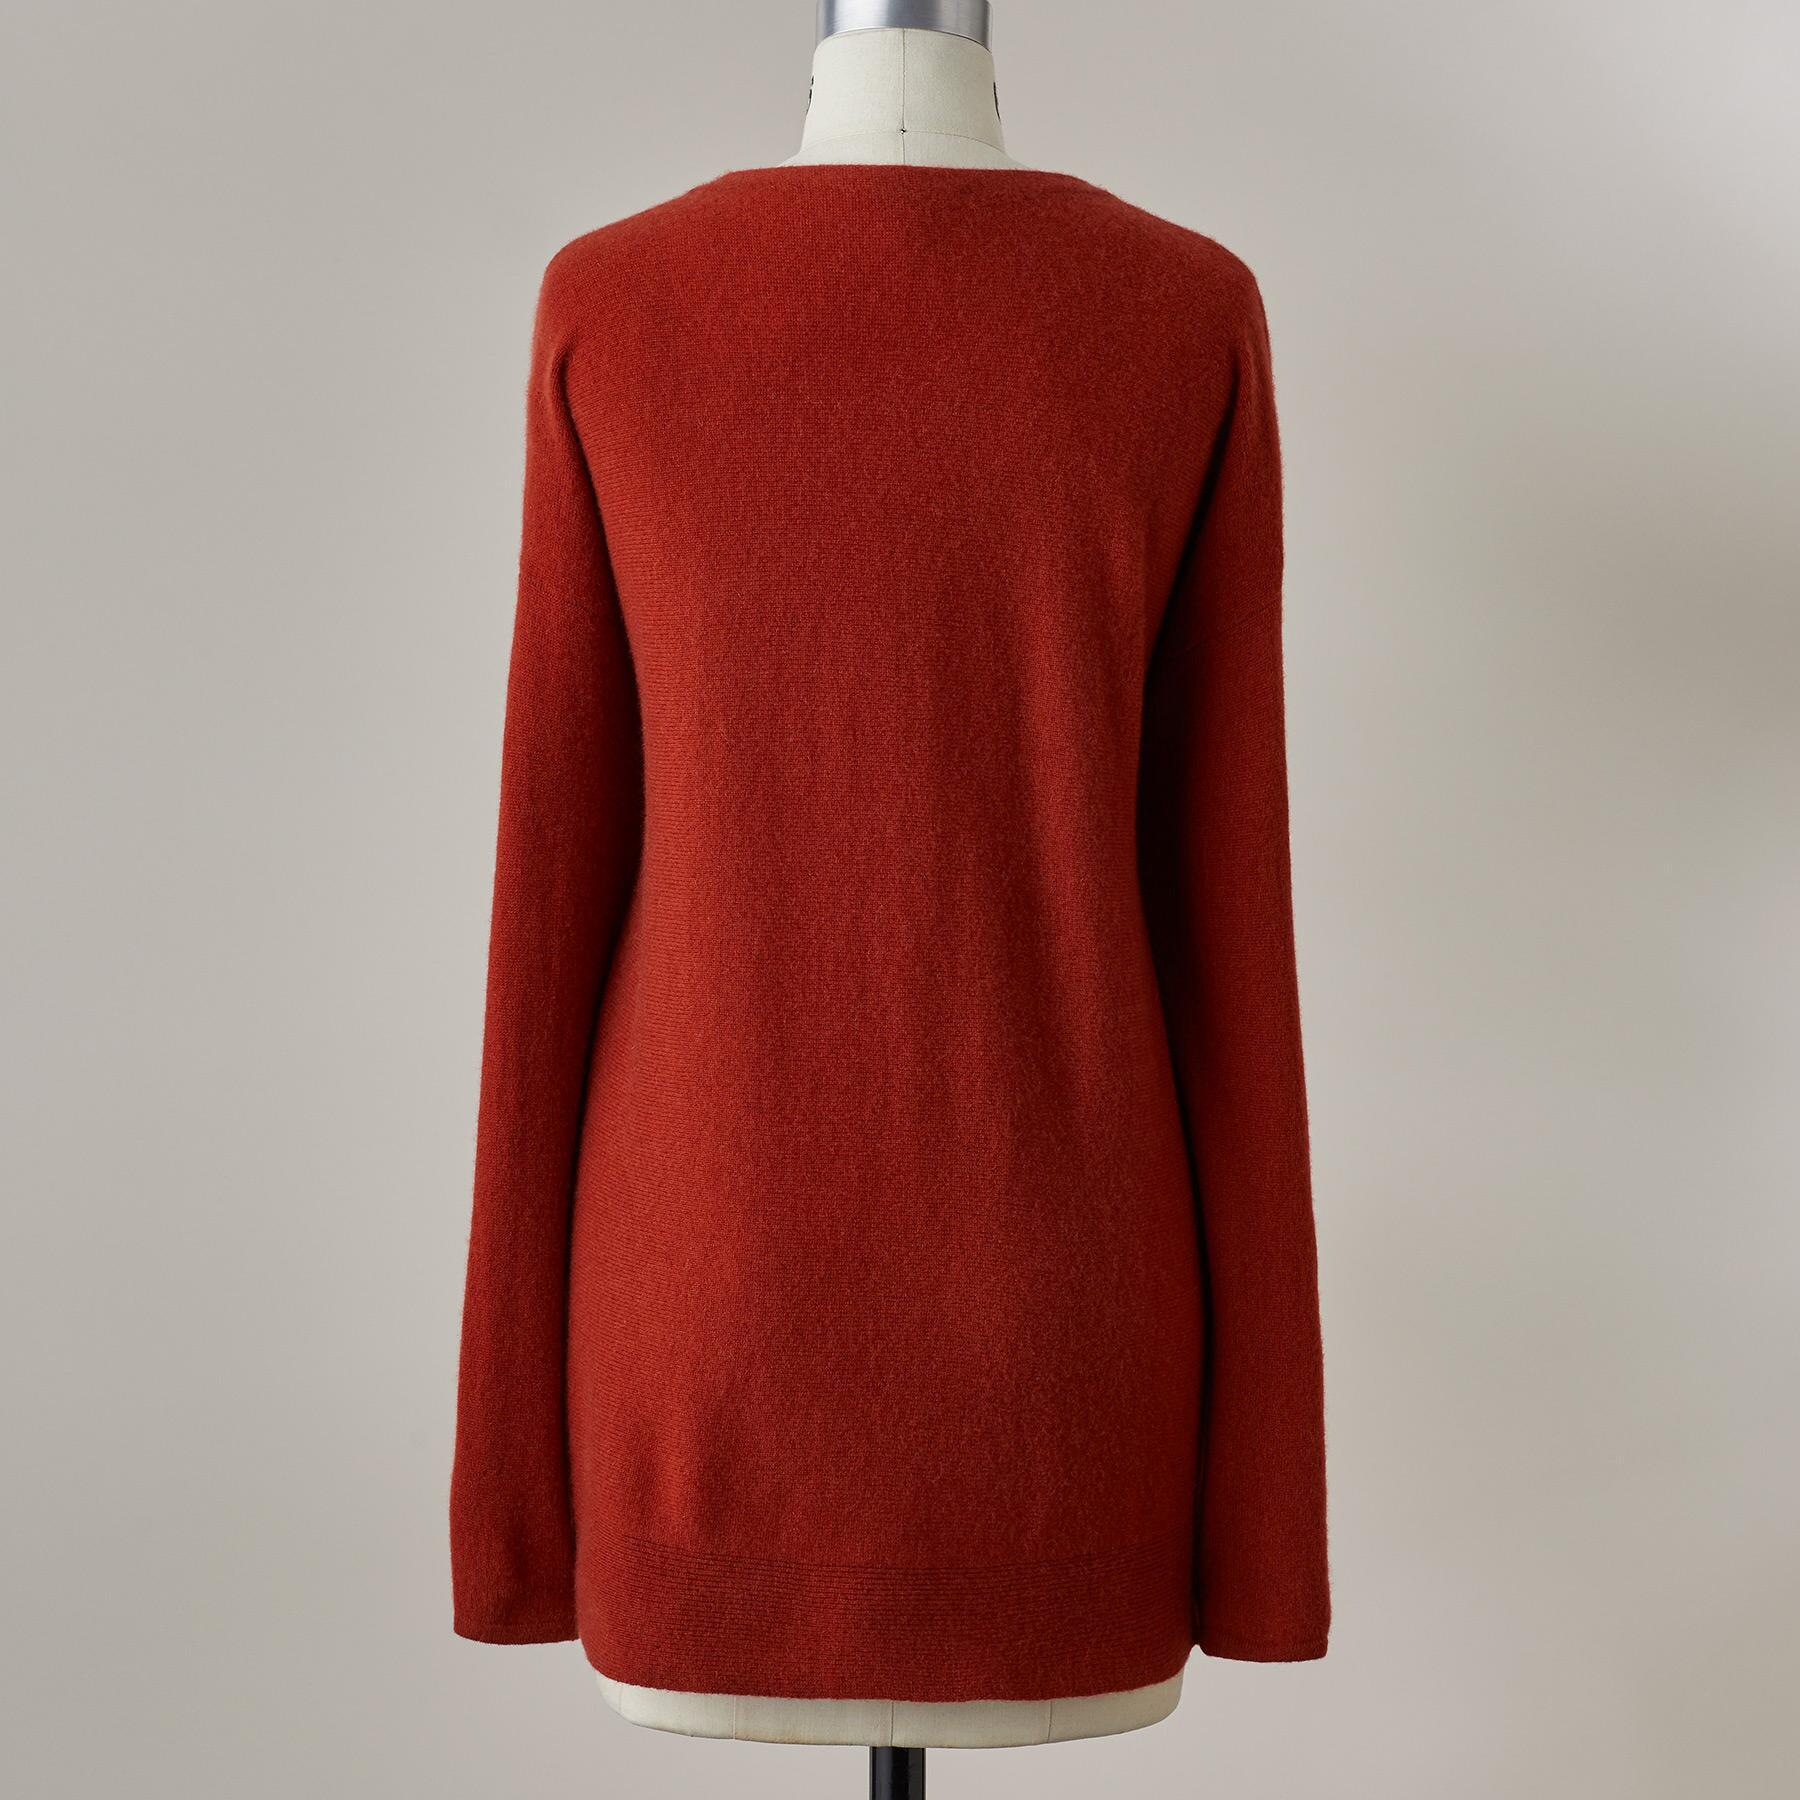 SIMPLE TRUTHS CASHMERE SWEATER - PETITES: View 4